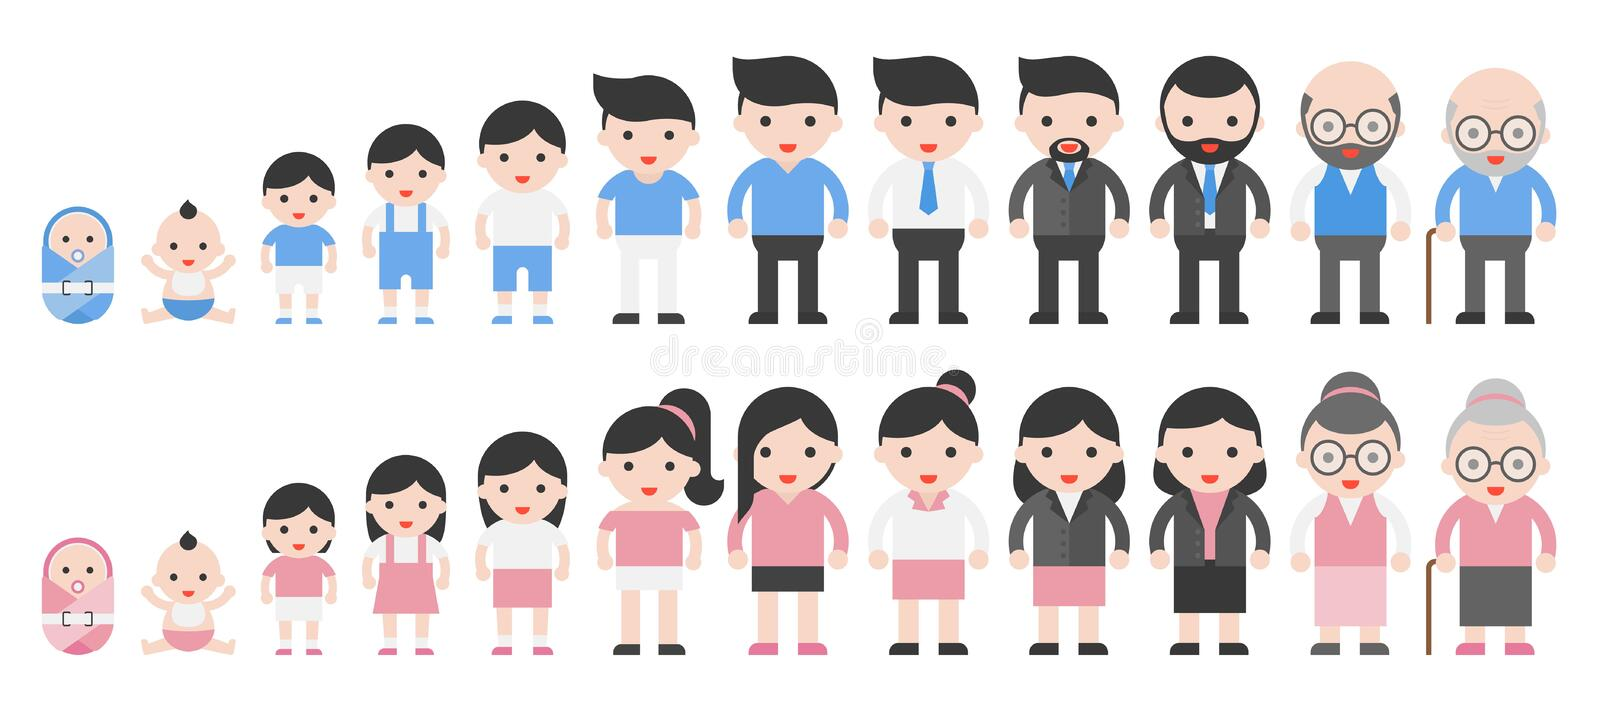 Human life cycle from newborn to retired. Human life cycle from newborn to children,teenage, adult, middle age and retired vector illustration